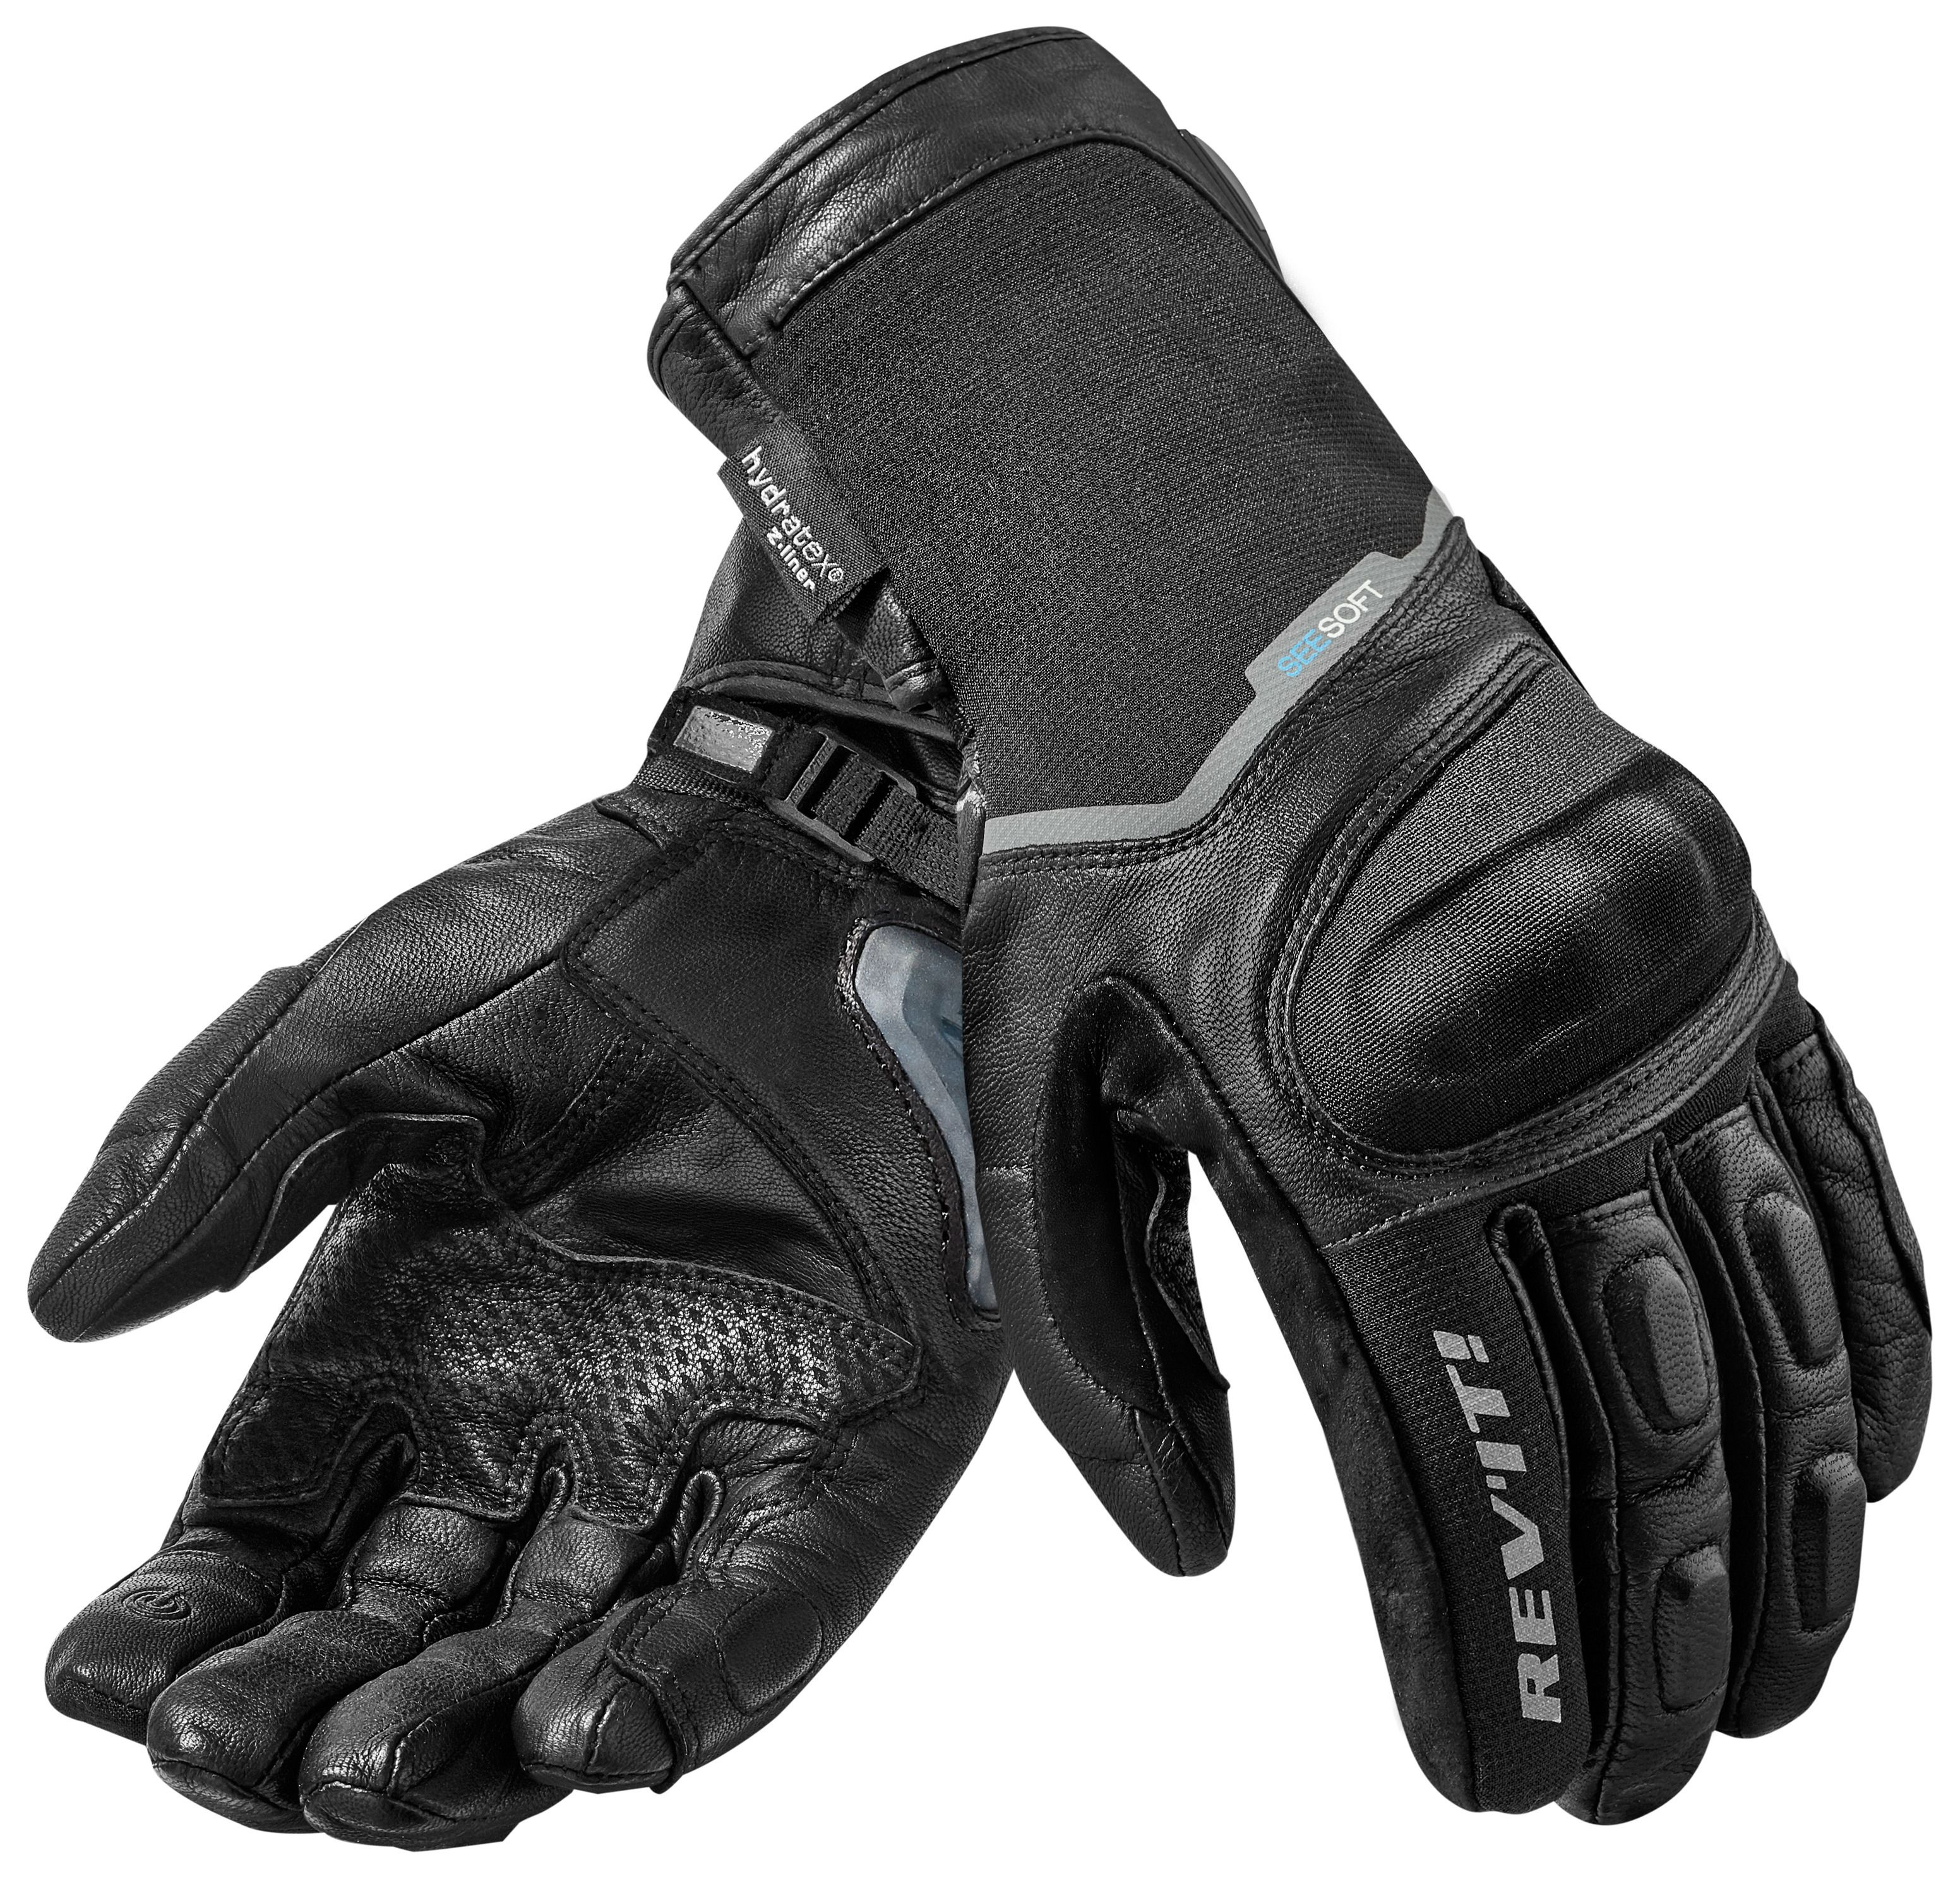 Motorbike Winter Gloves Motorcycle Racing Leather Waterproof Thermal 1353 2XL